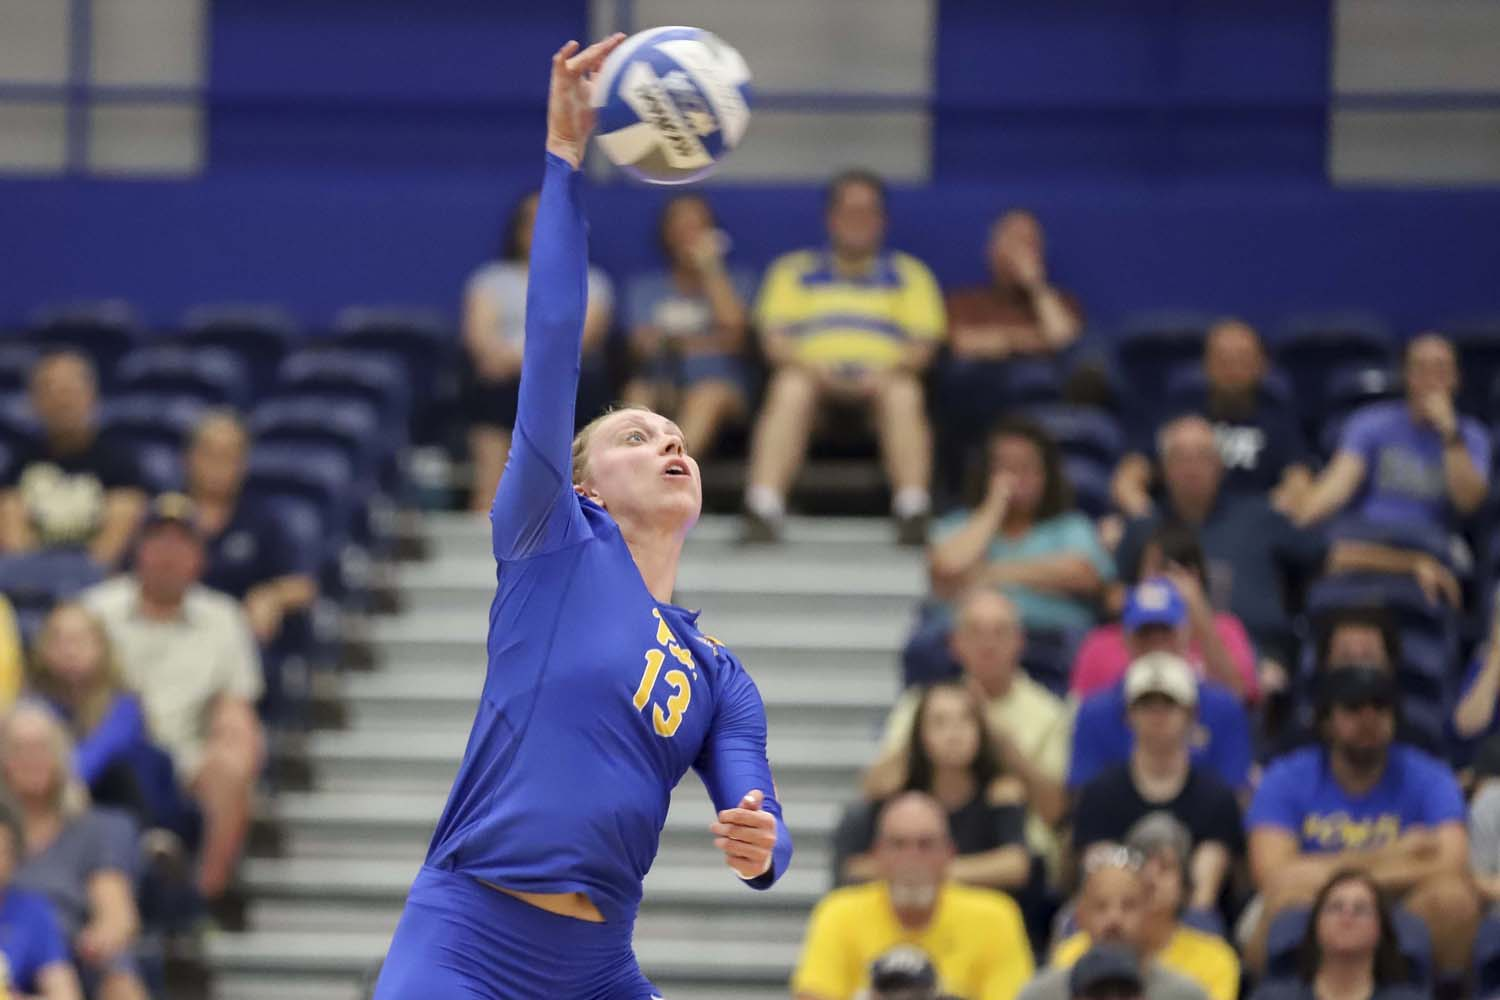 Redshirt senior Stephanie Williams completed 10 kills during Friday evening's 3-0 victory over Cincinnati.